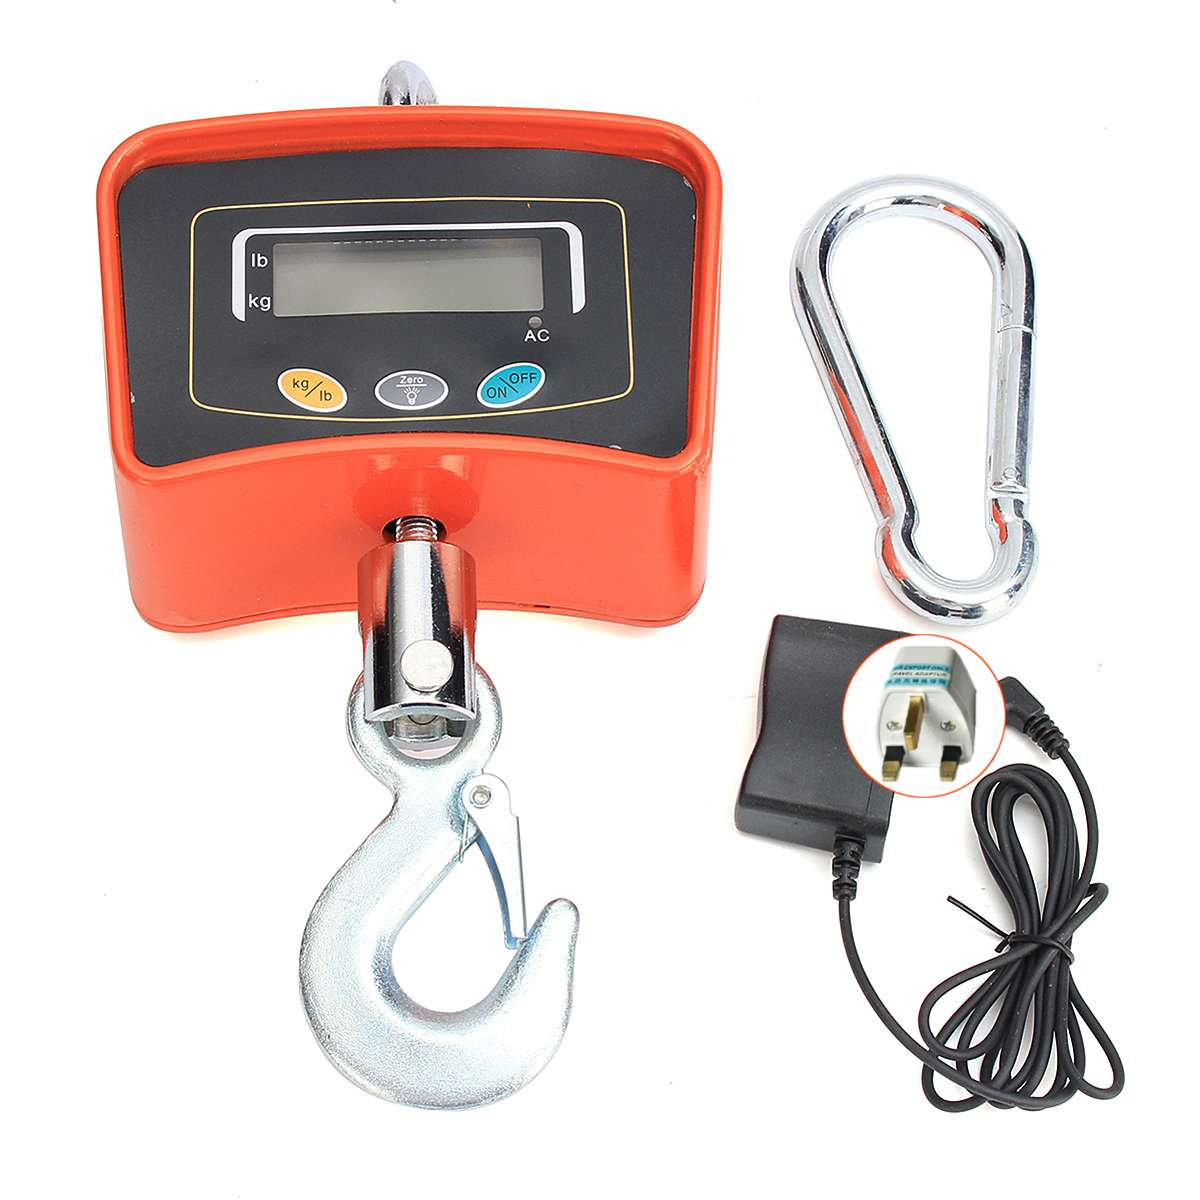 500KG/1100 LBS Digital Crane Scale 110V/220V Heavy Industrial Hanging Scale Electronic Weighing Balance Tools - 4